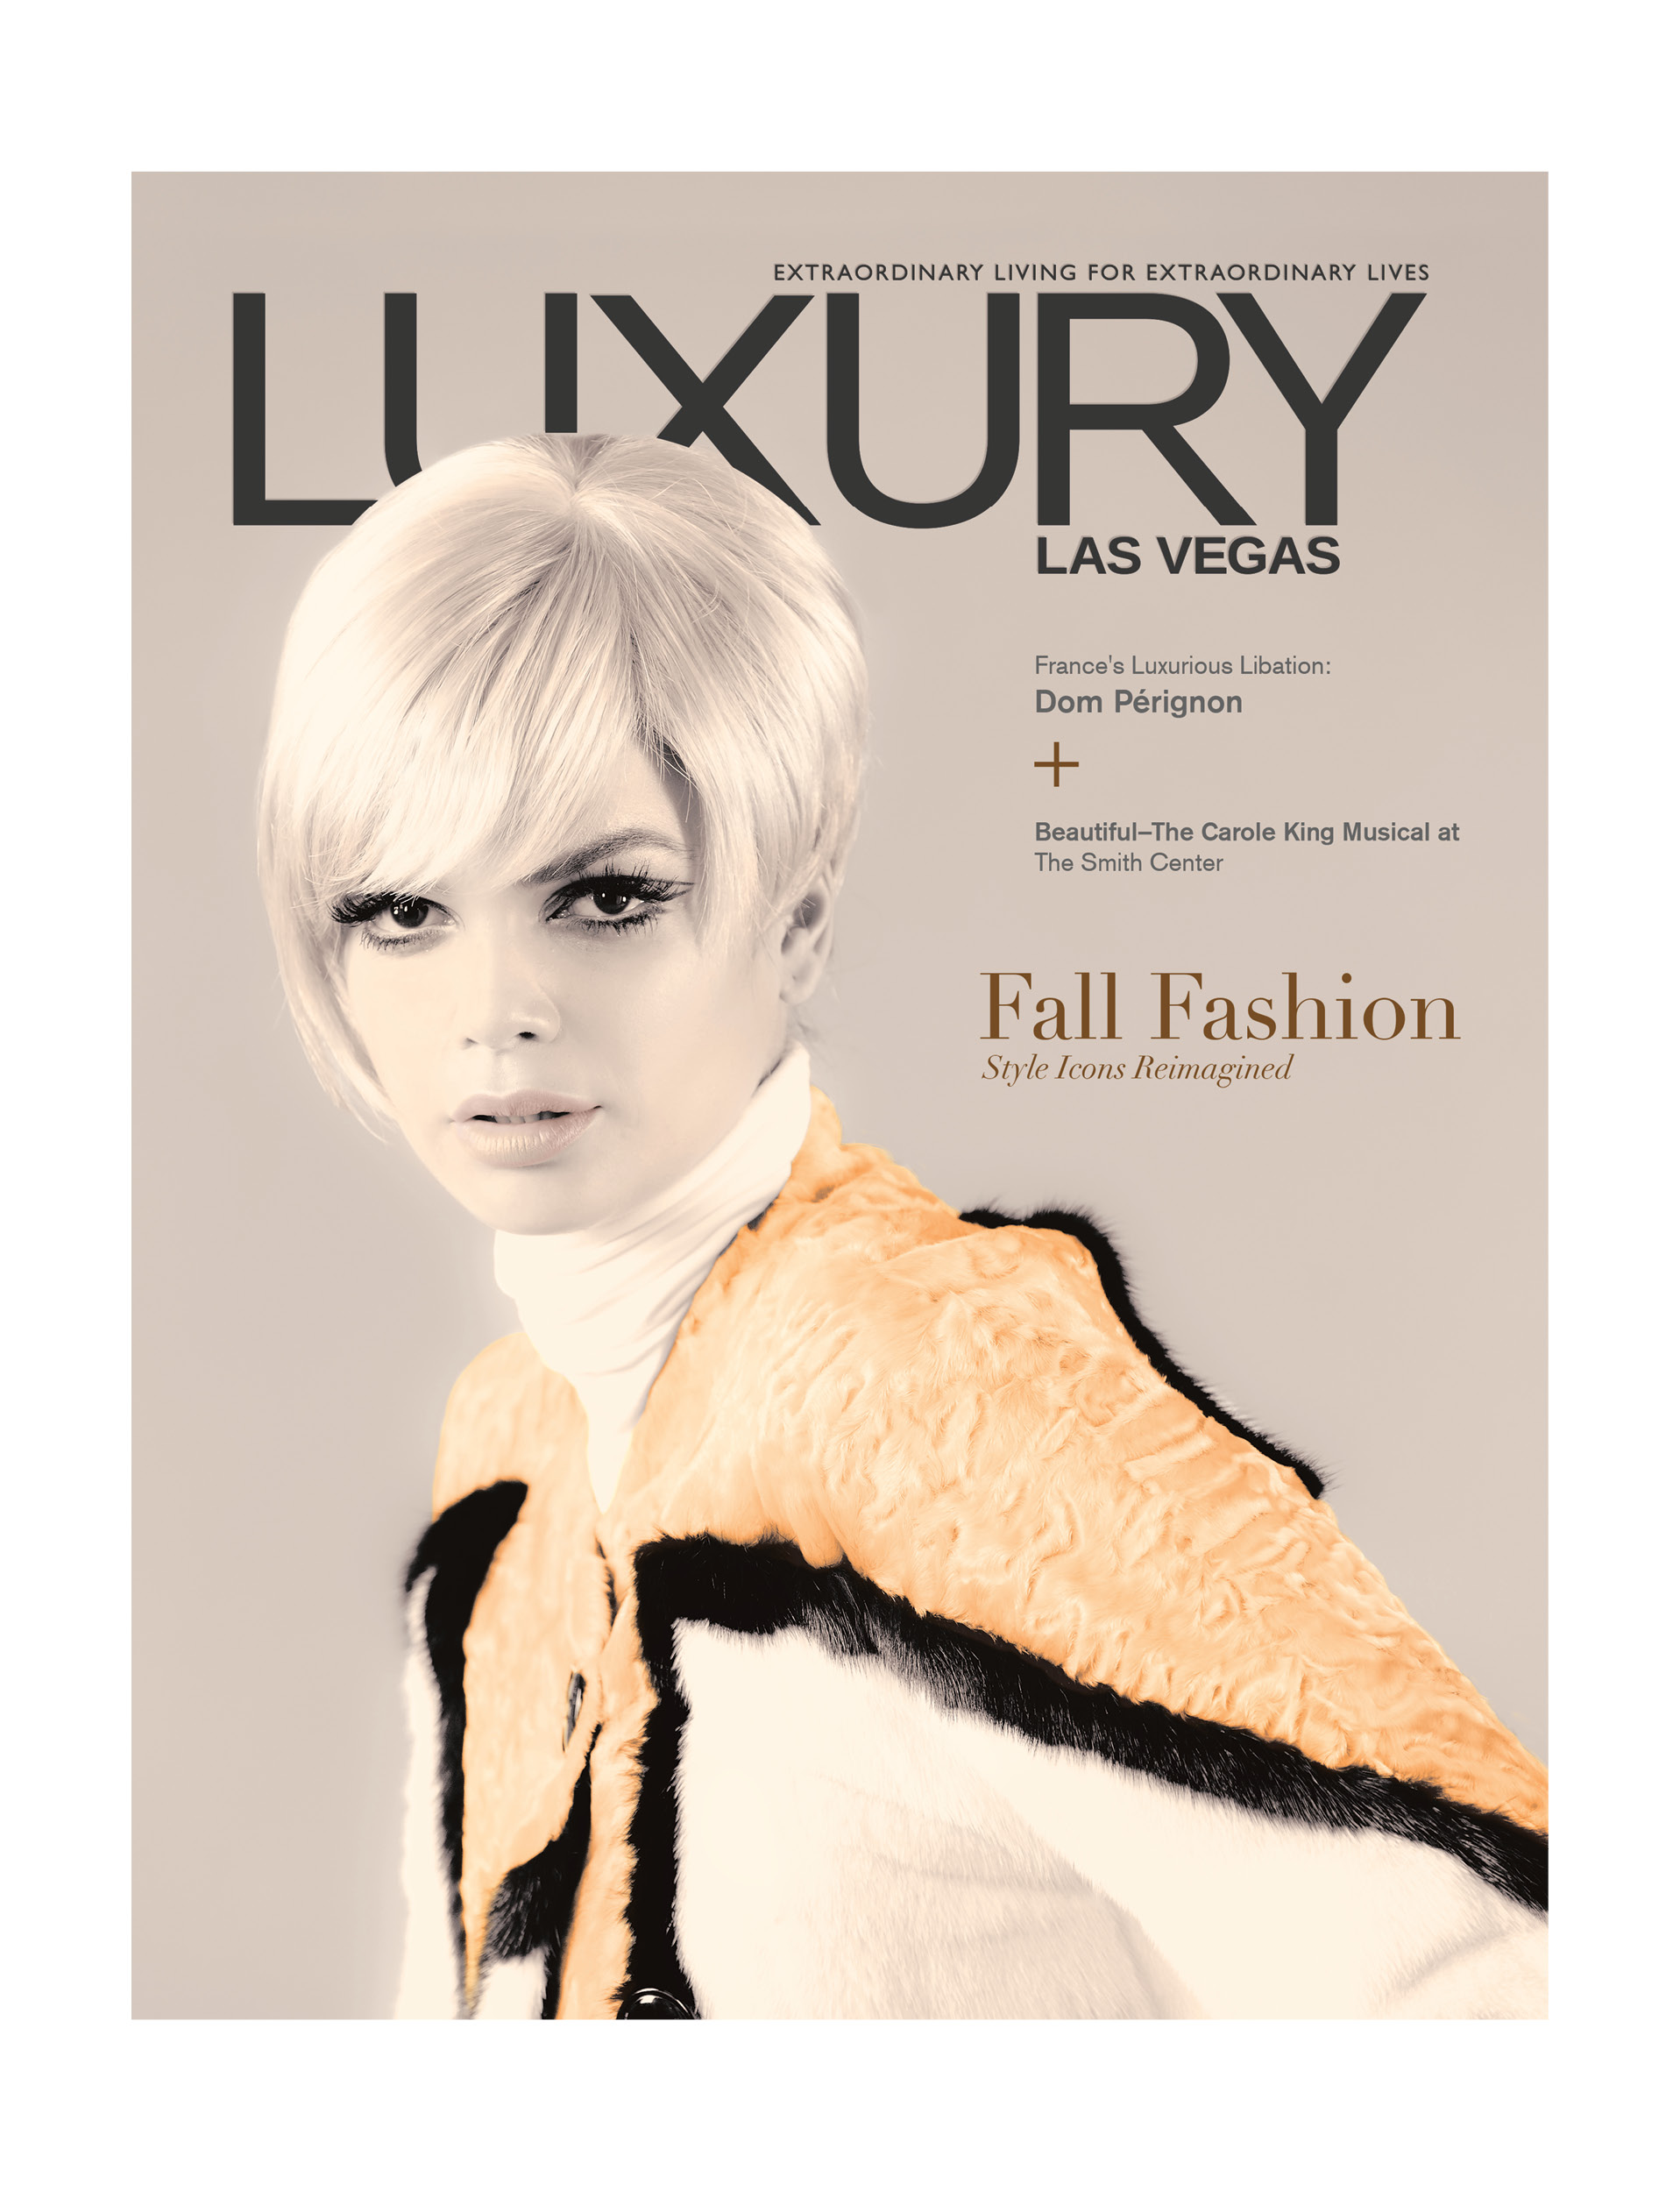 Luxury Las Vegas - September 2016